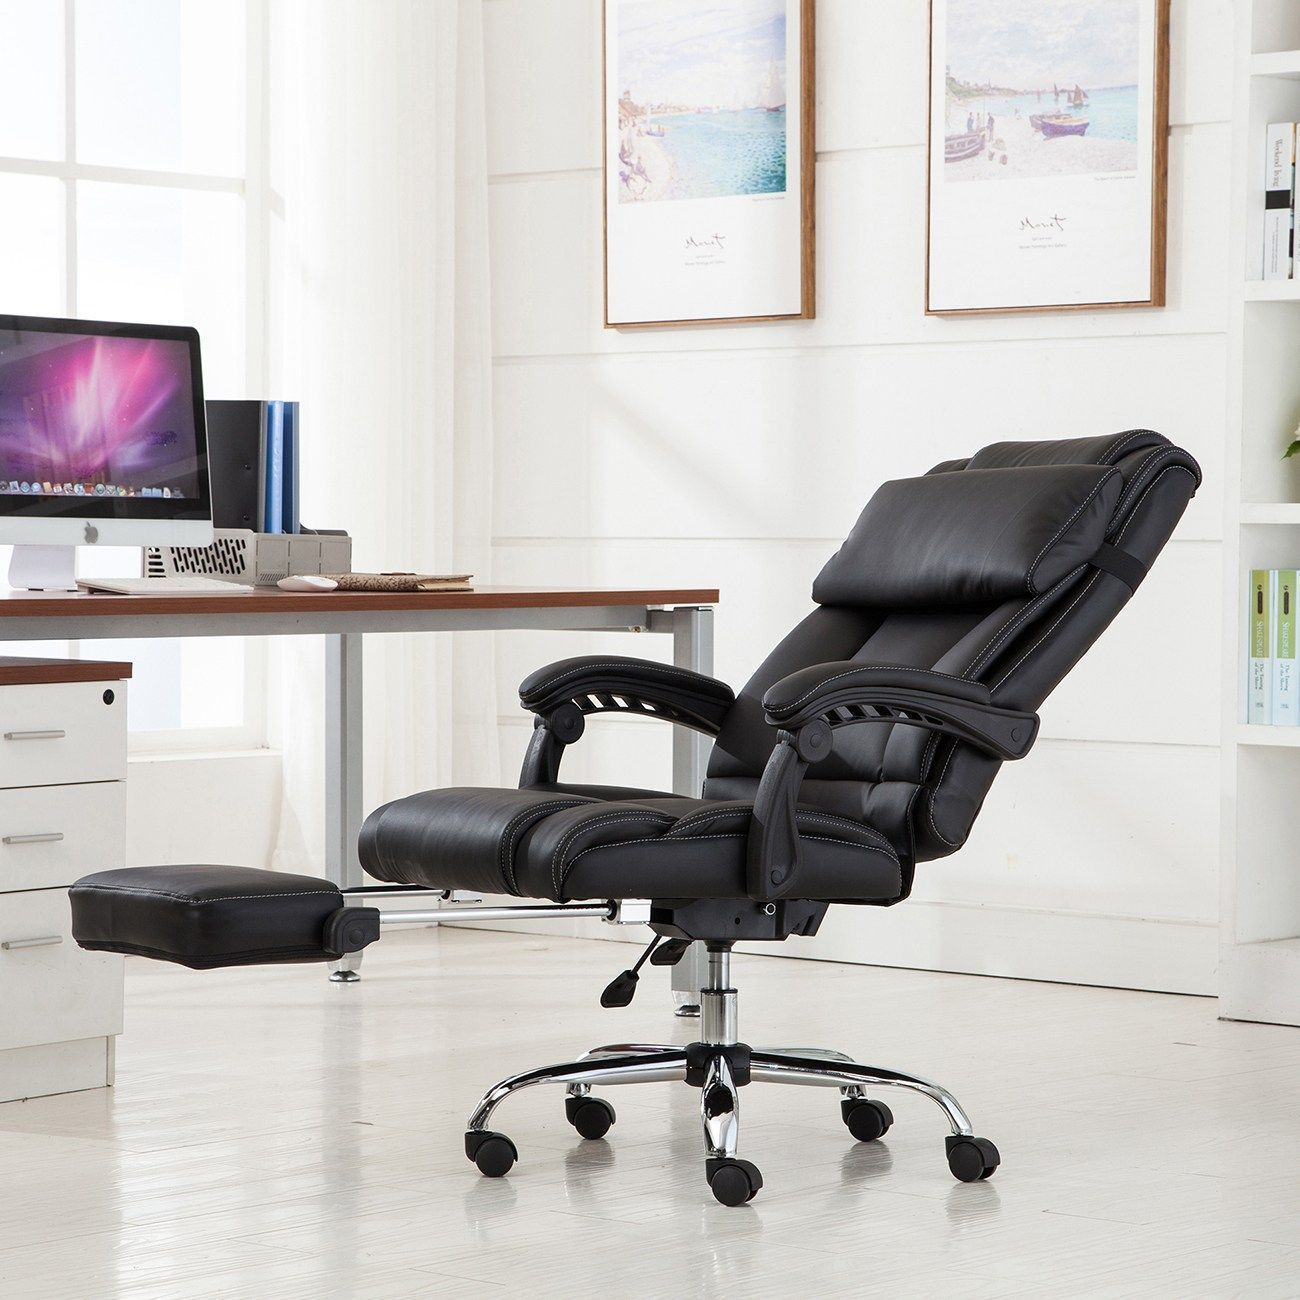 How to choose a computer chair 38